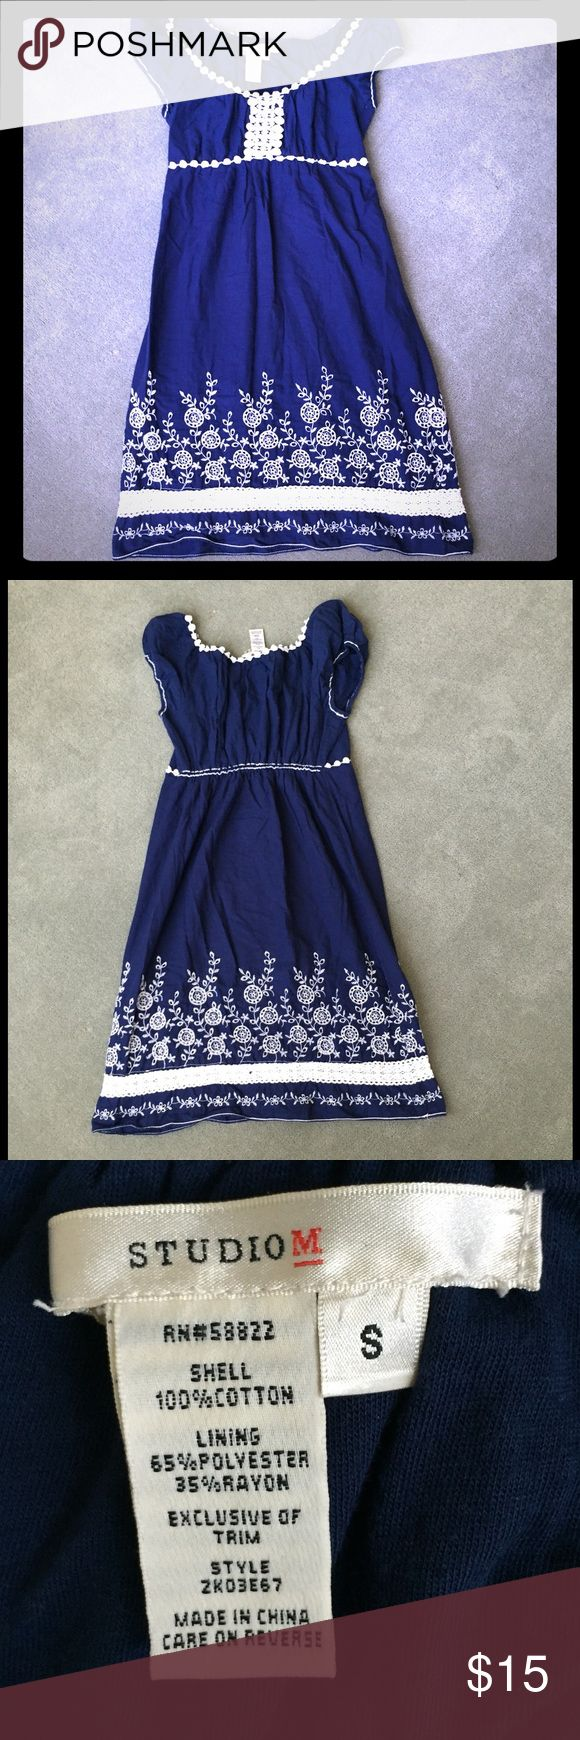 ✨Sale✨Studio M Summer Dress This dress is gorgeous. Flowy and so comfy. In great condition. Thanks for looking and feel free to ask me any questions😊 Studio M Dresses